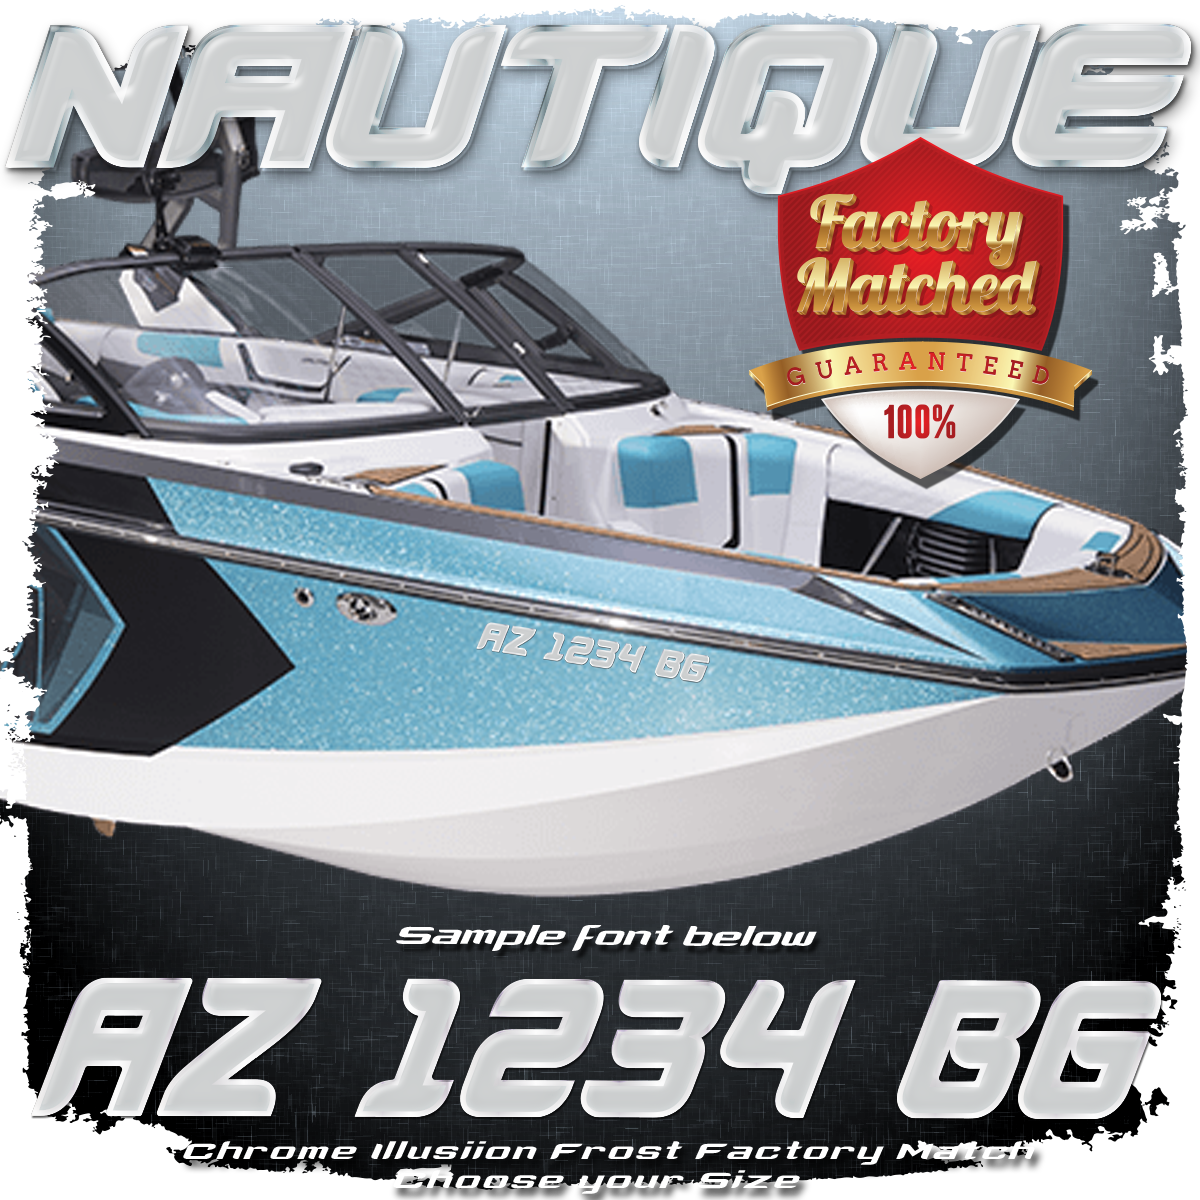 Nautique Registration (2 included), Chrome Illusion Frost